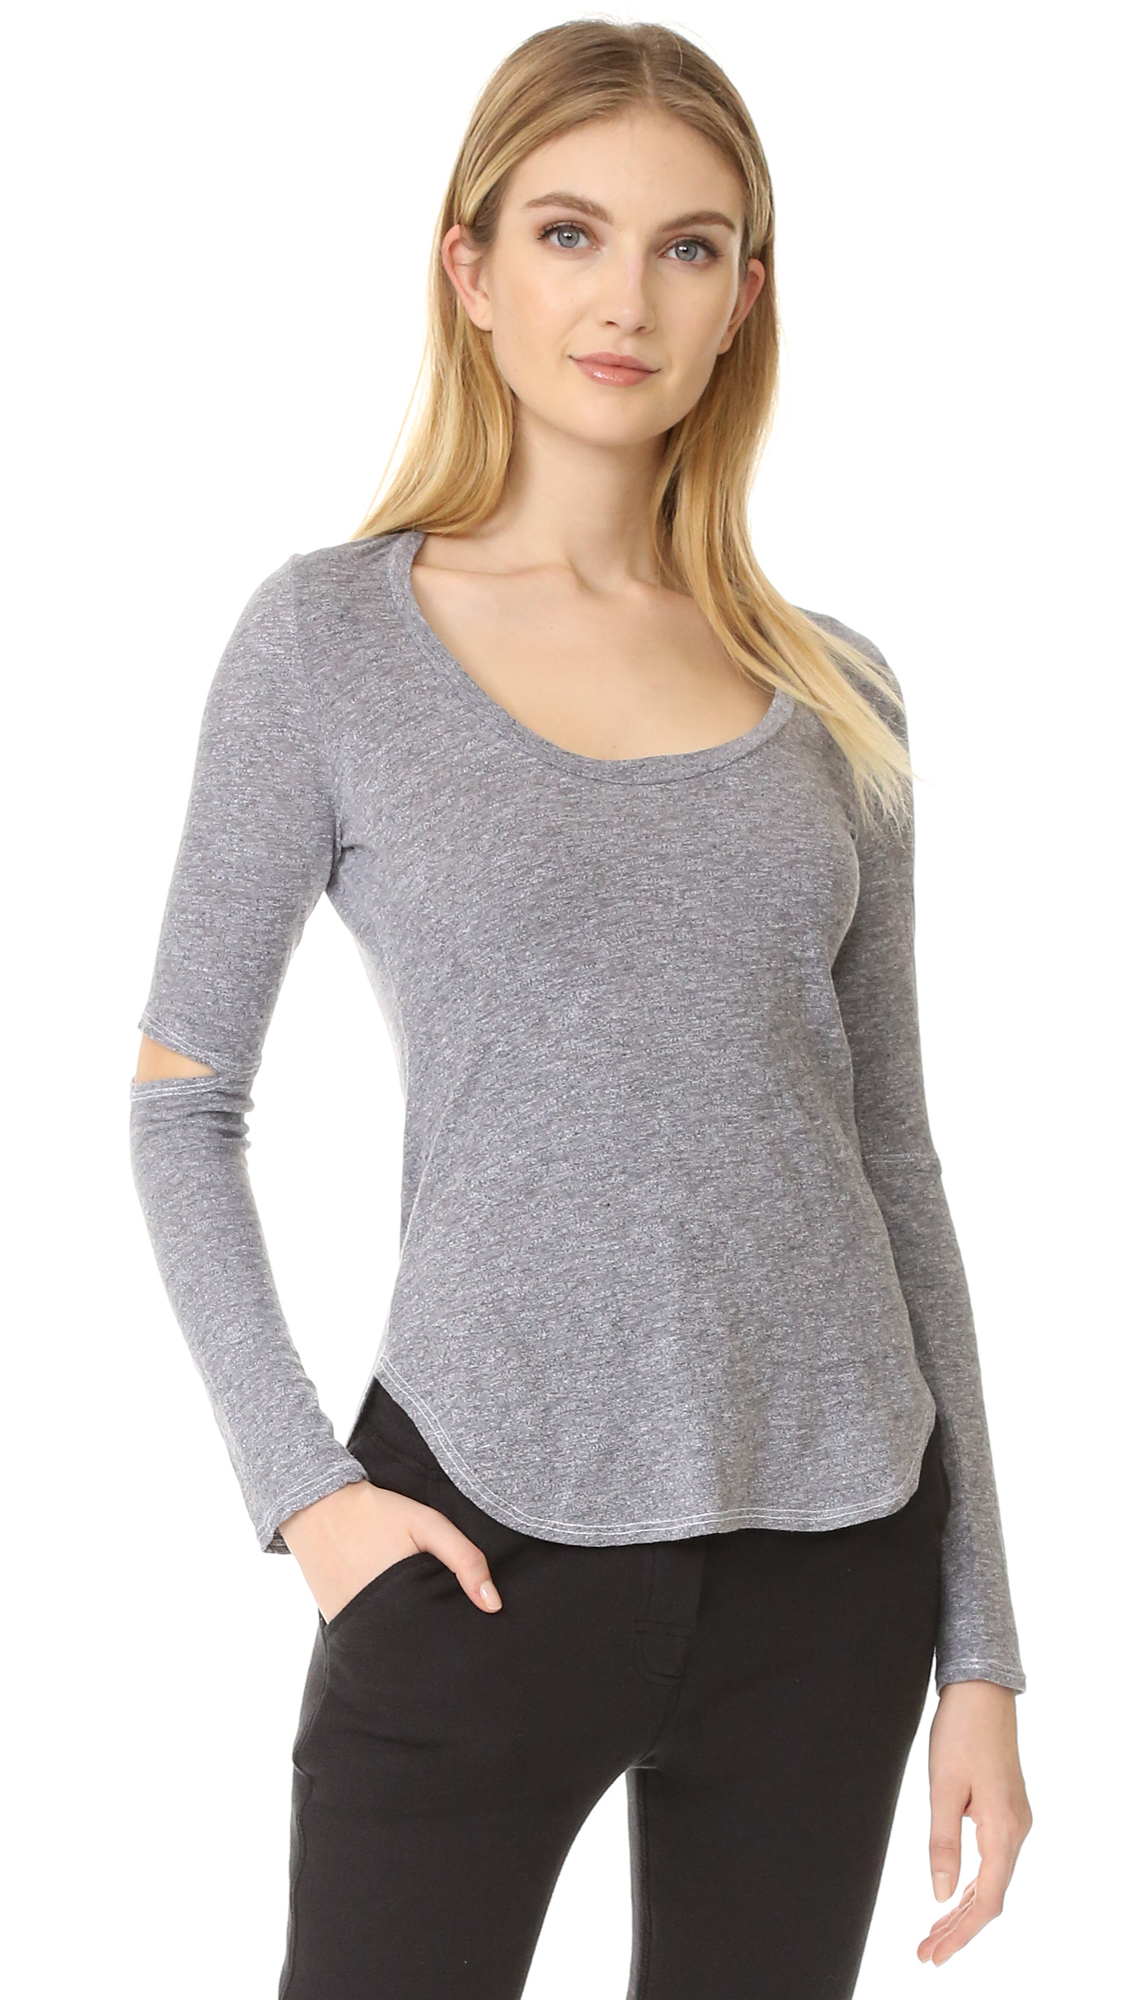 Lanston Cutout Long Sleeve Tee - Heather at Shopbop